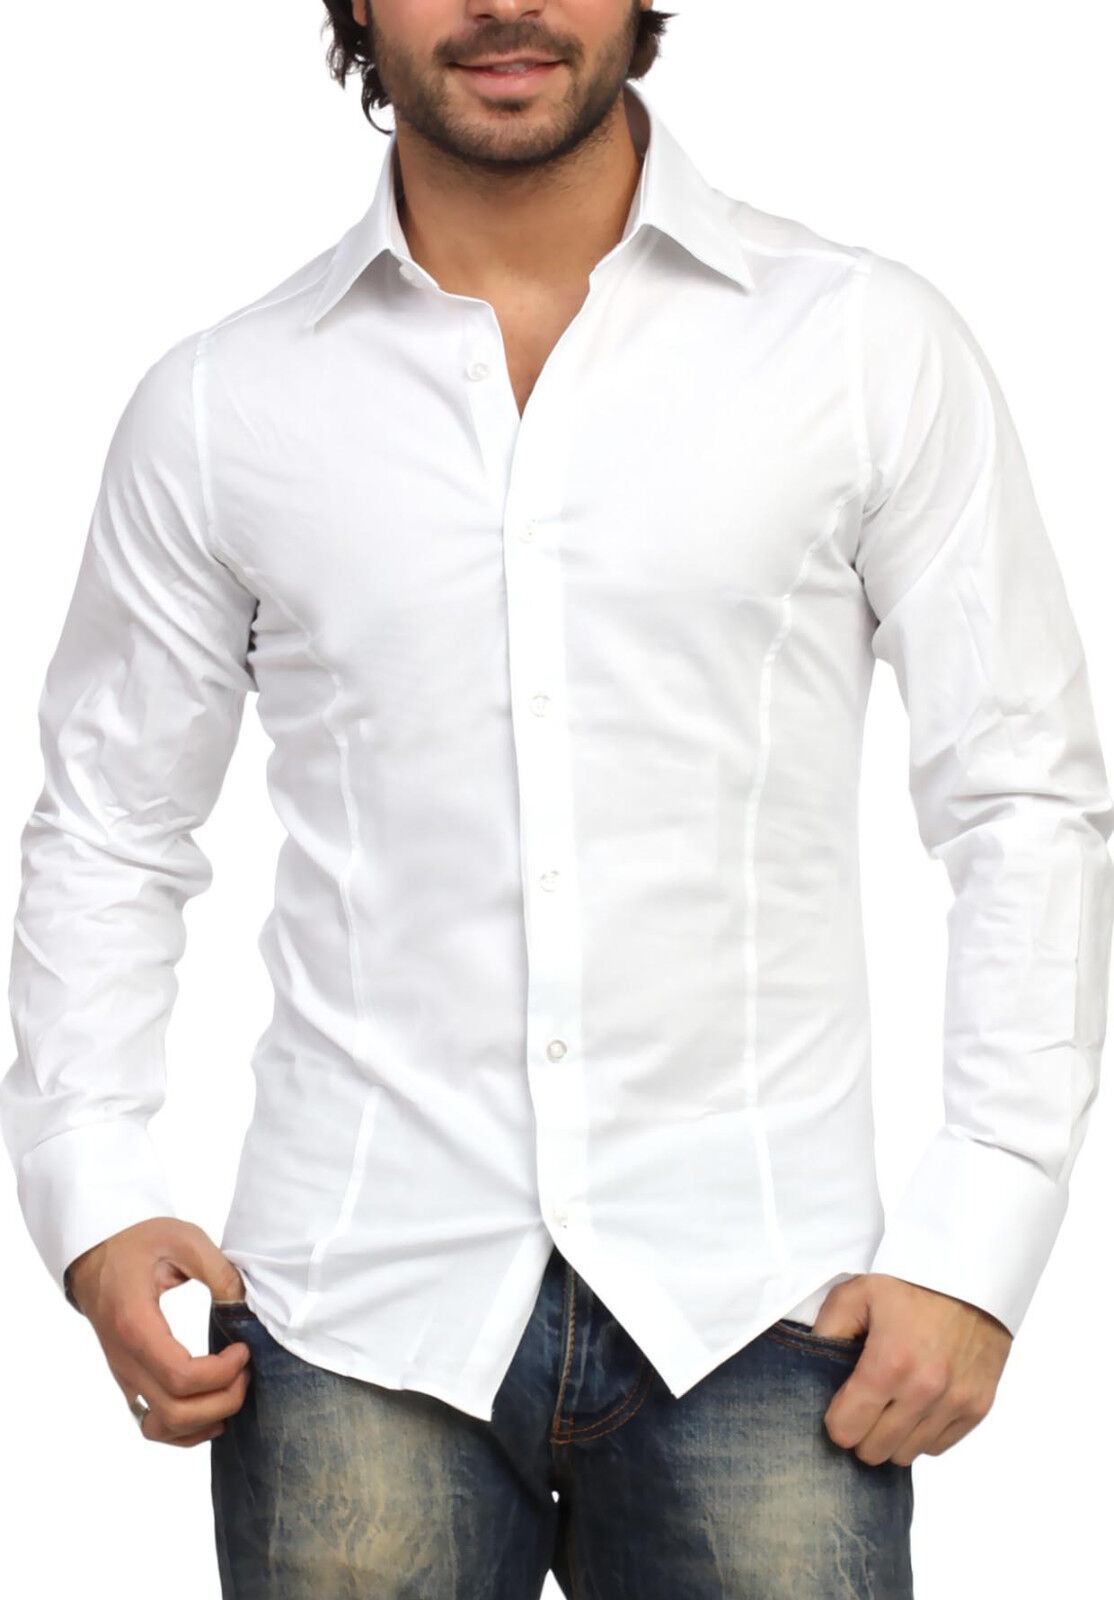 Bianca - White Men's Long Sleeved Shirt Fashion